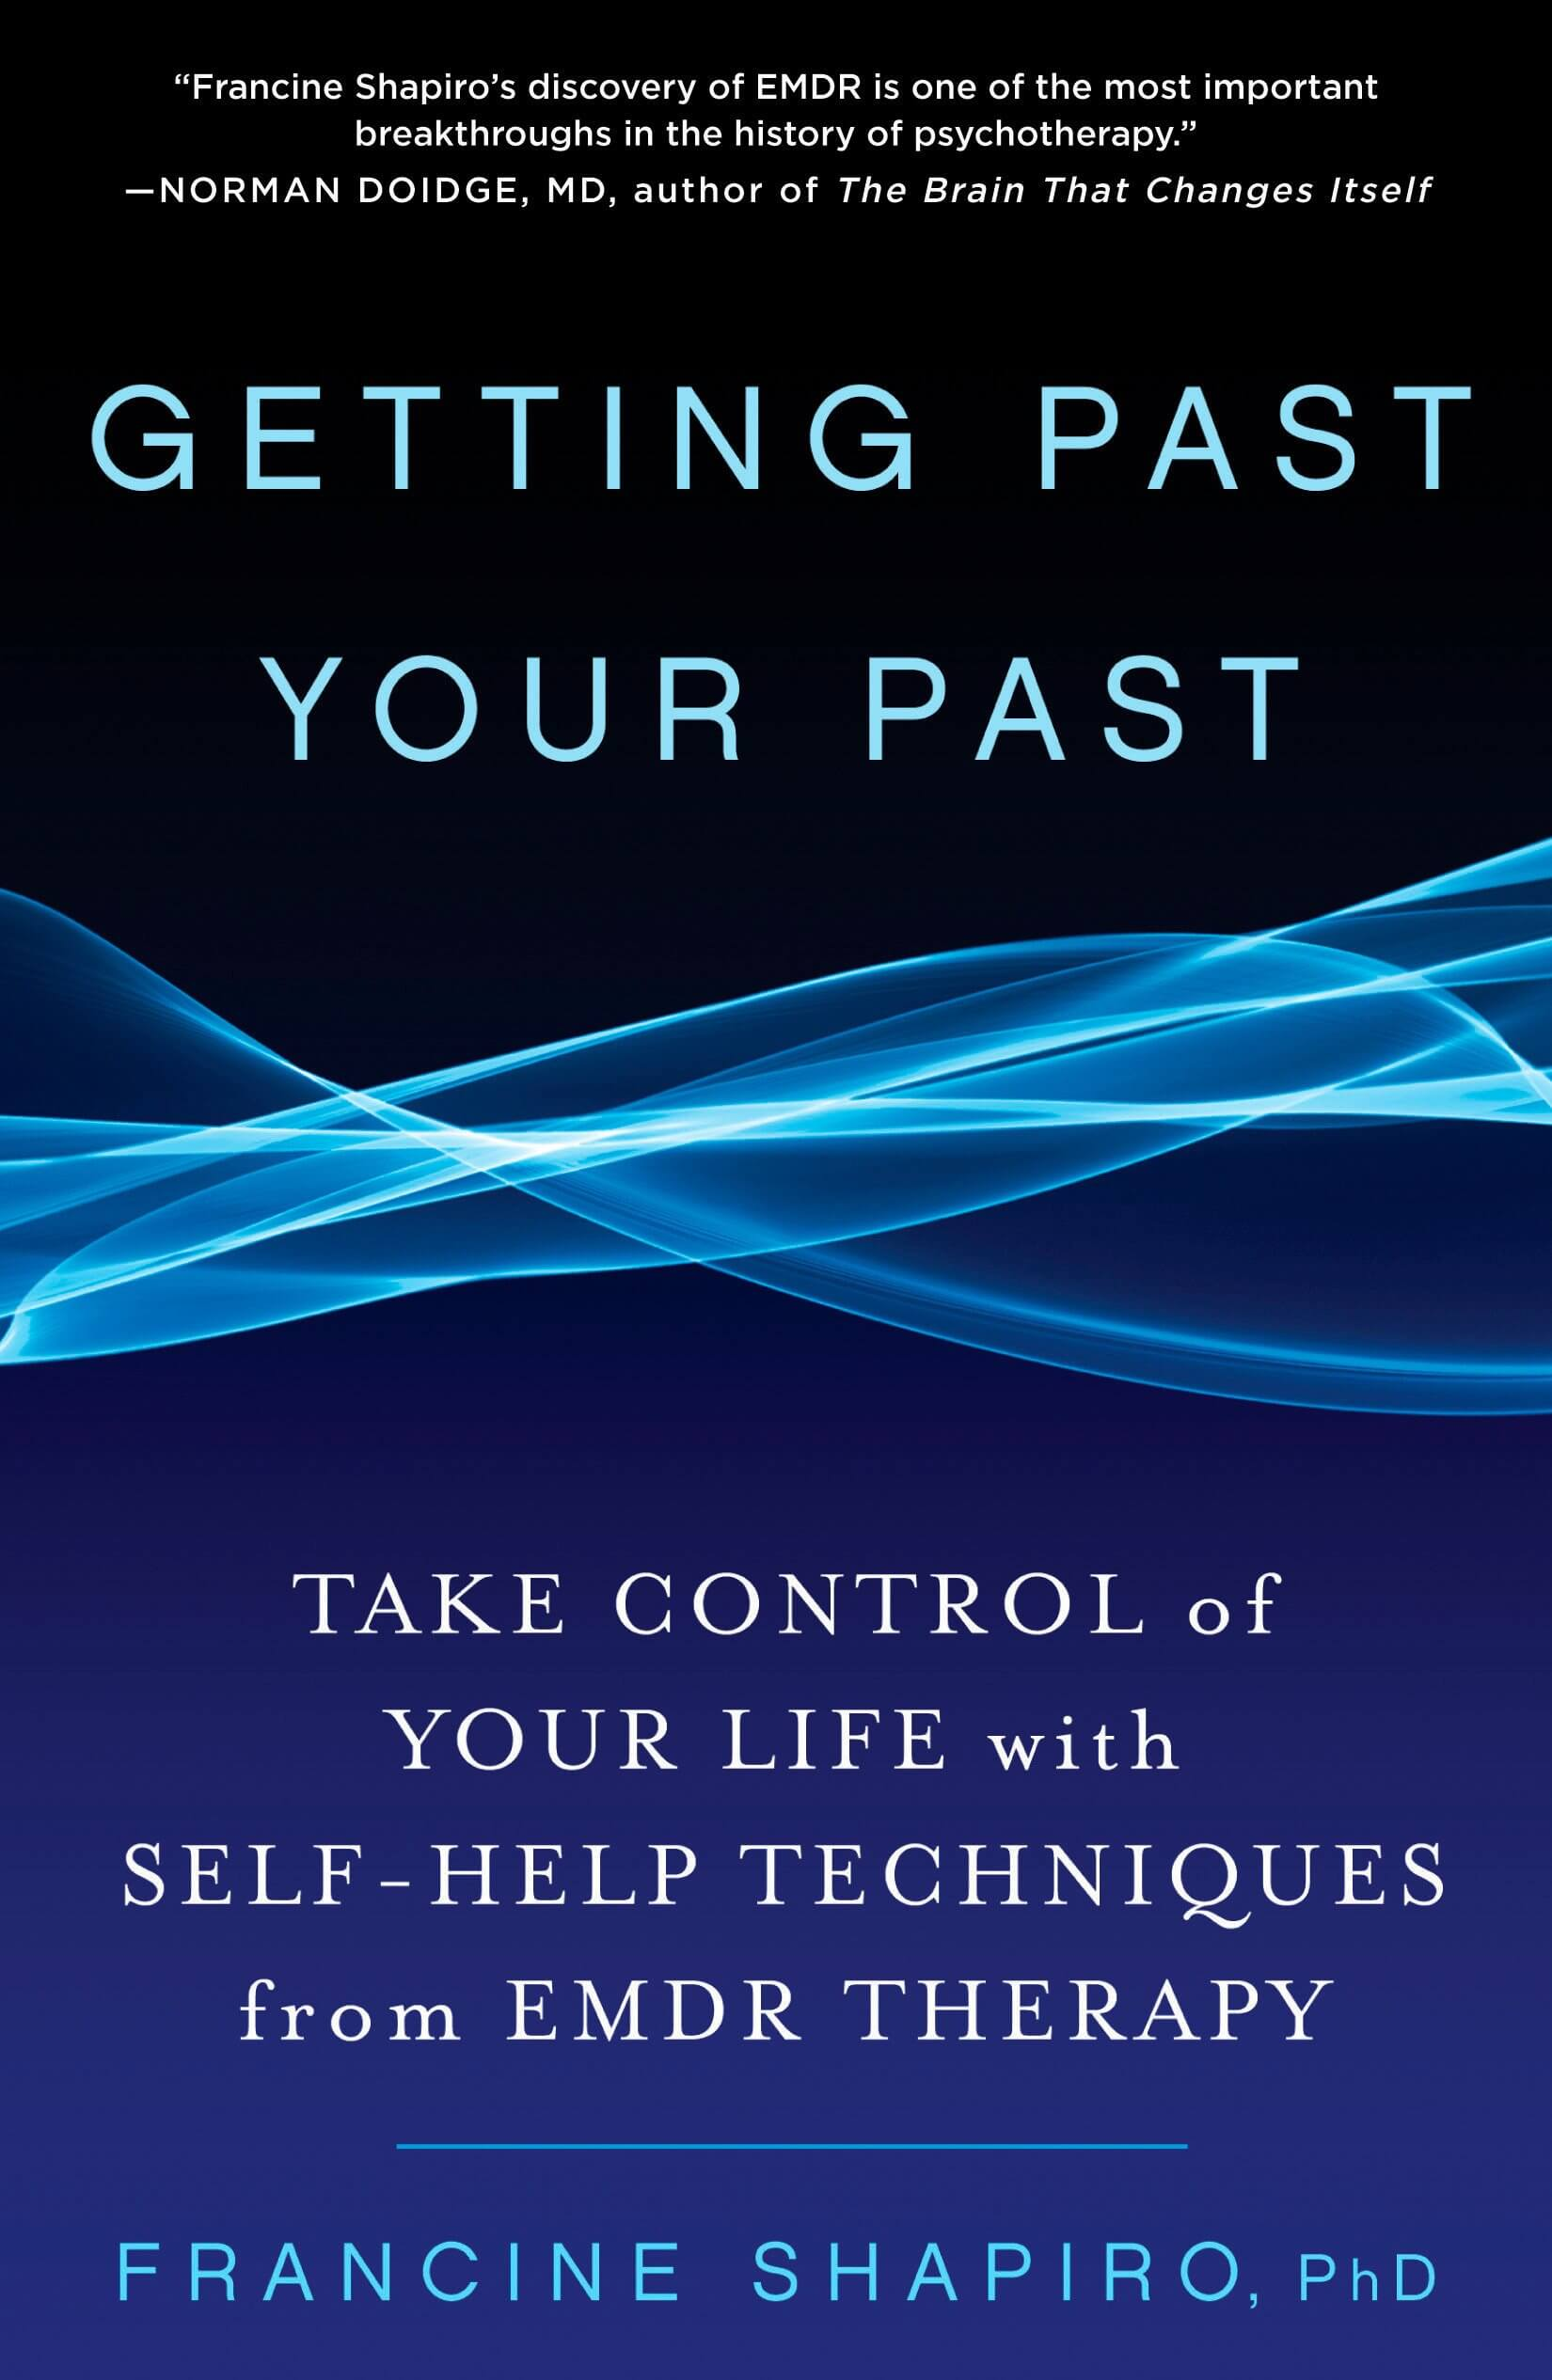 getting past your past book by francine shapiro